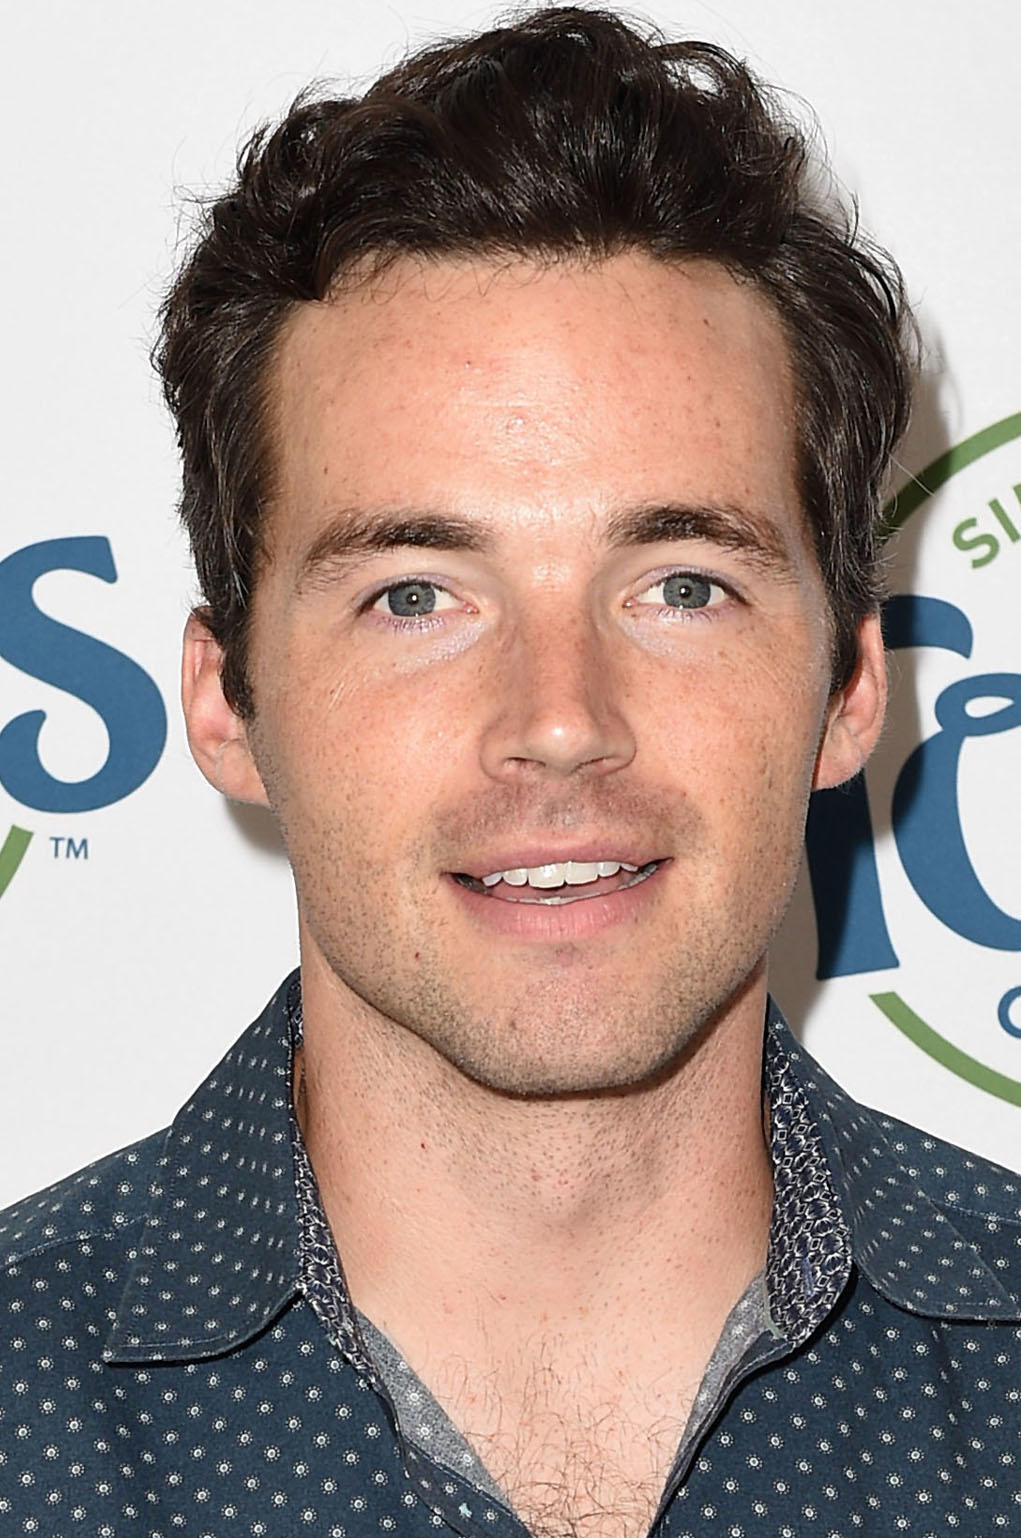 Ian Harding at the Tom's of Maine Luminous White toothpaste launch in Beverly Hills, California.